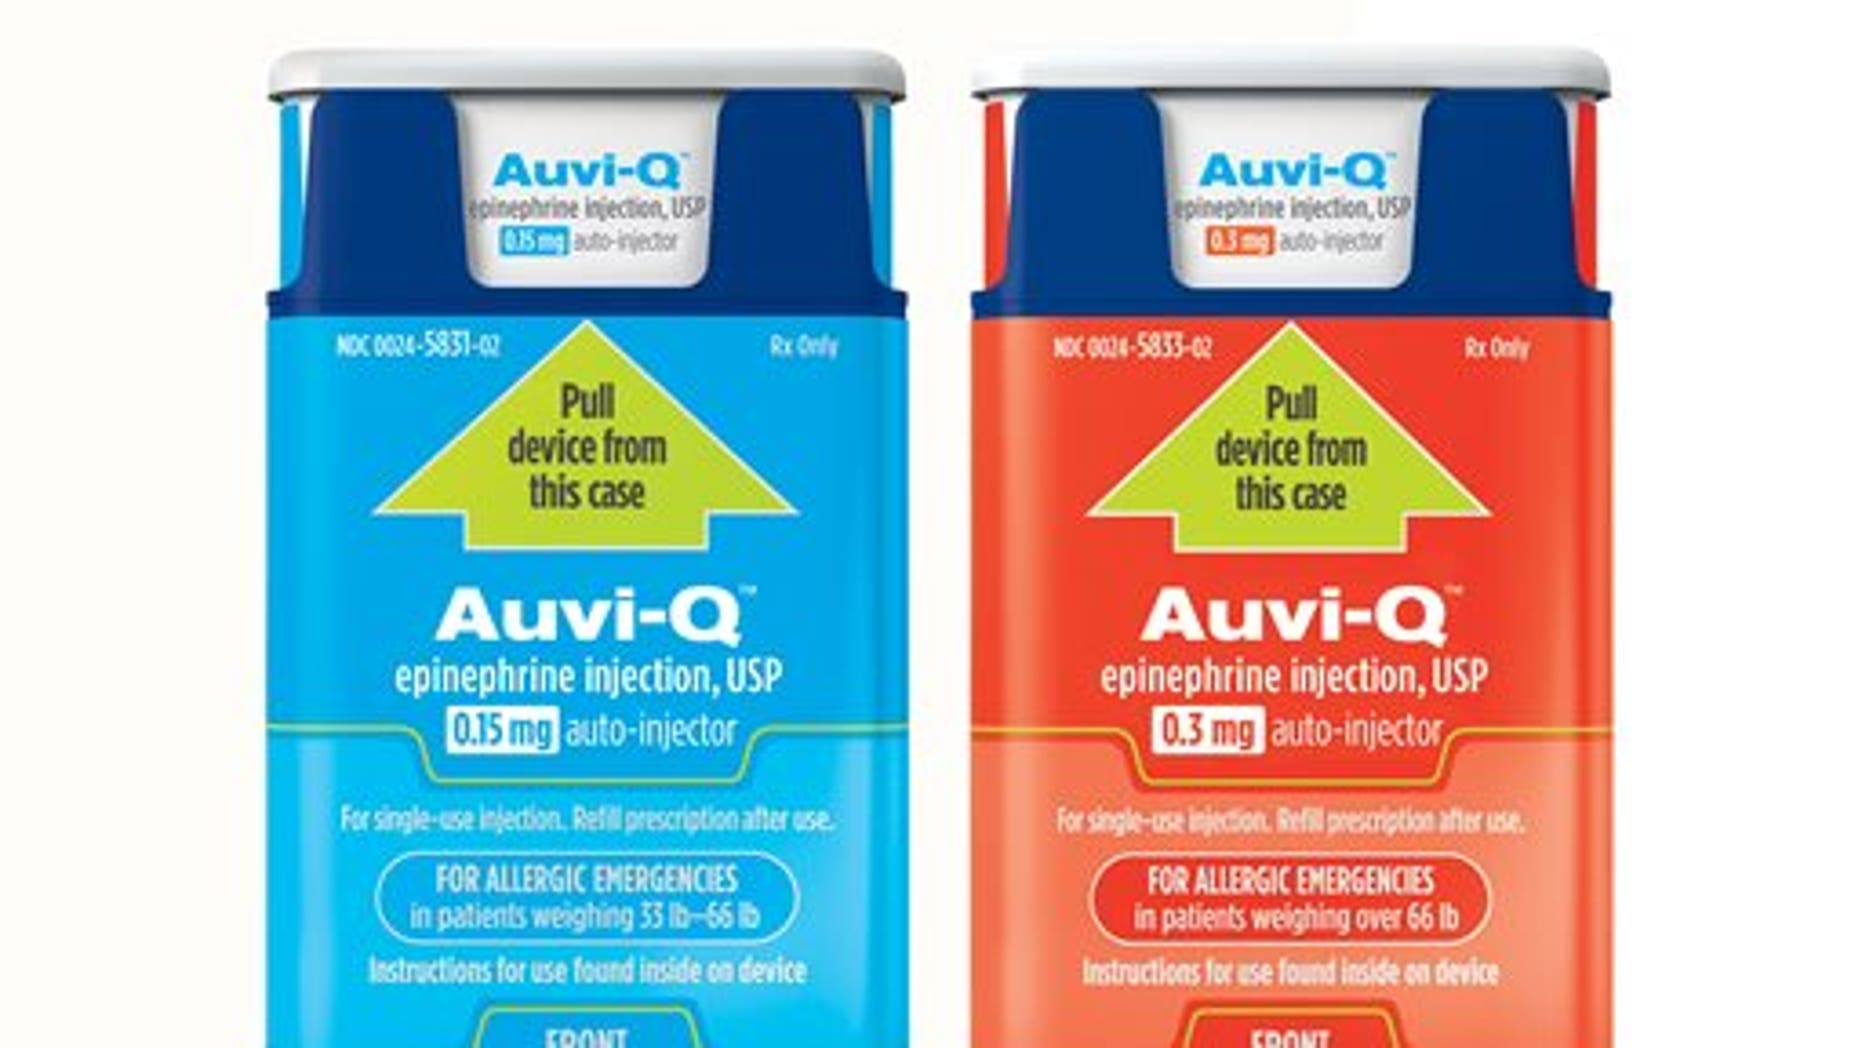 This product image provided by Sanofi shows Auvi-Q epinephrine injectors. Sanofi on Wednesday, Oct. 28, 2015, said it is recalling hundreds of thousands of the injections used to treat severe allergic reactions because they may not deliver the correct amount of the life-saving drug. (Sanofi via AP)